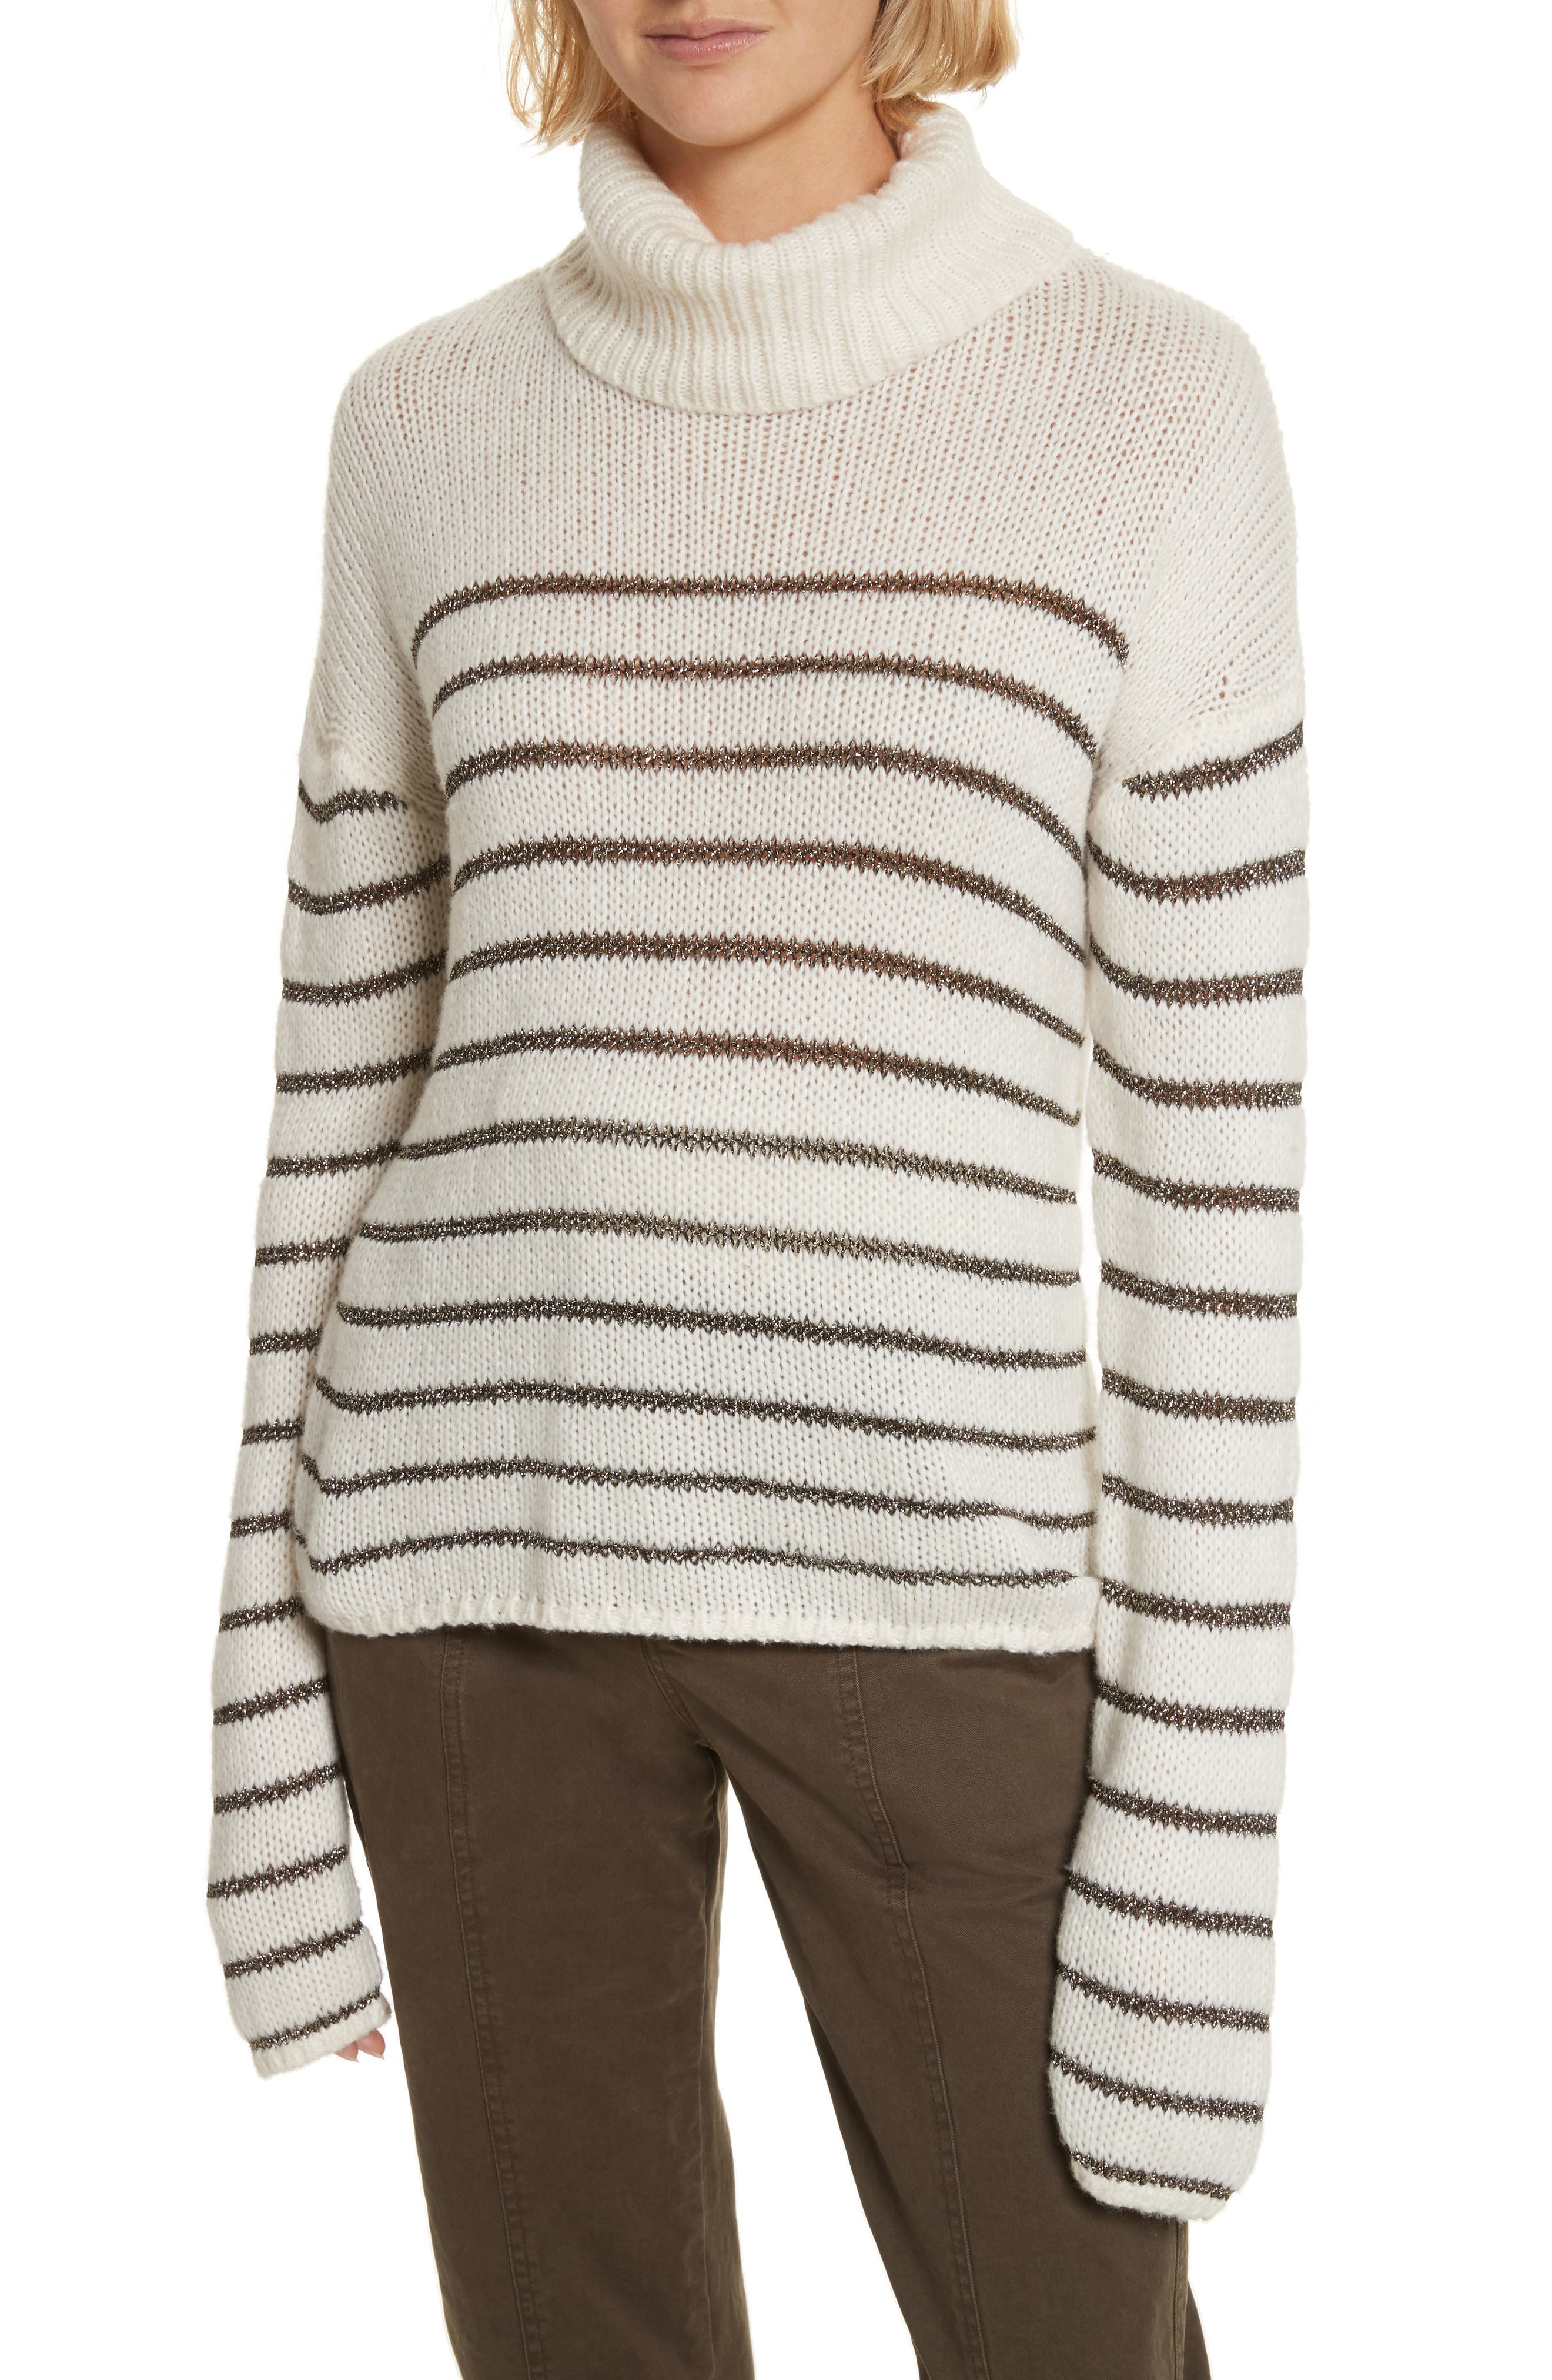 A.L.C. Elisa Metallic Stripe Turtleneck Sweater